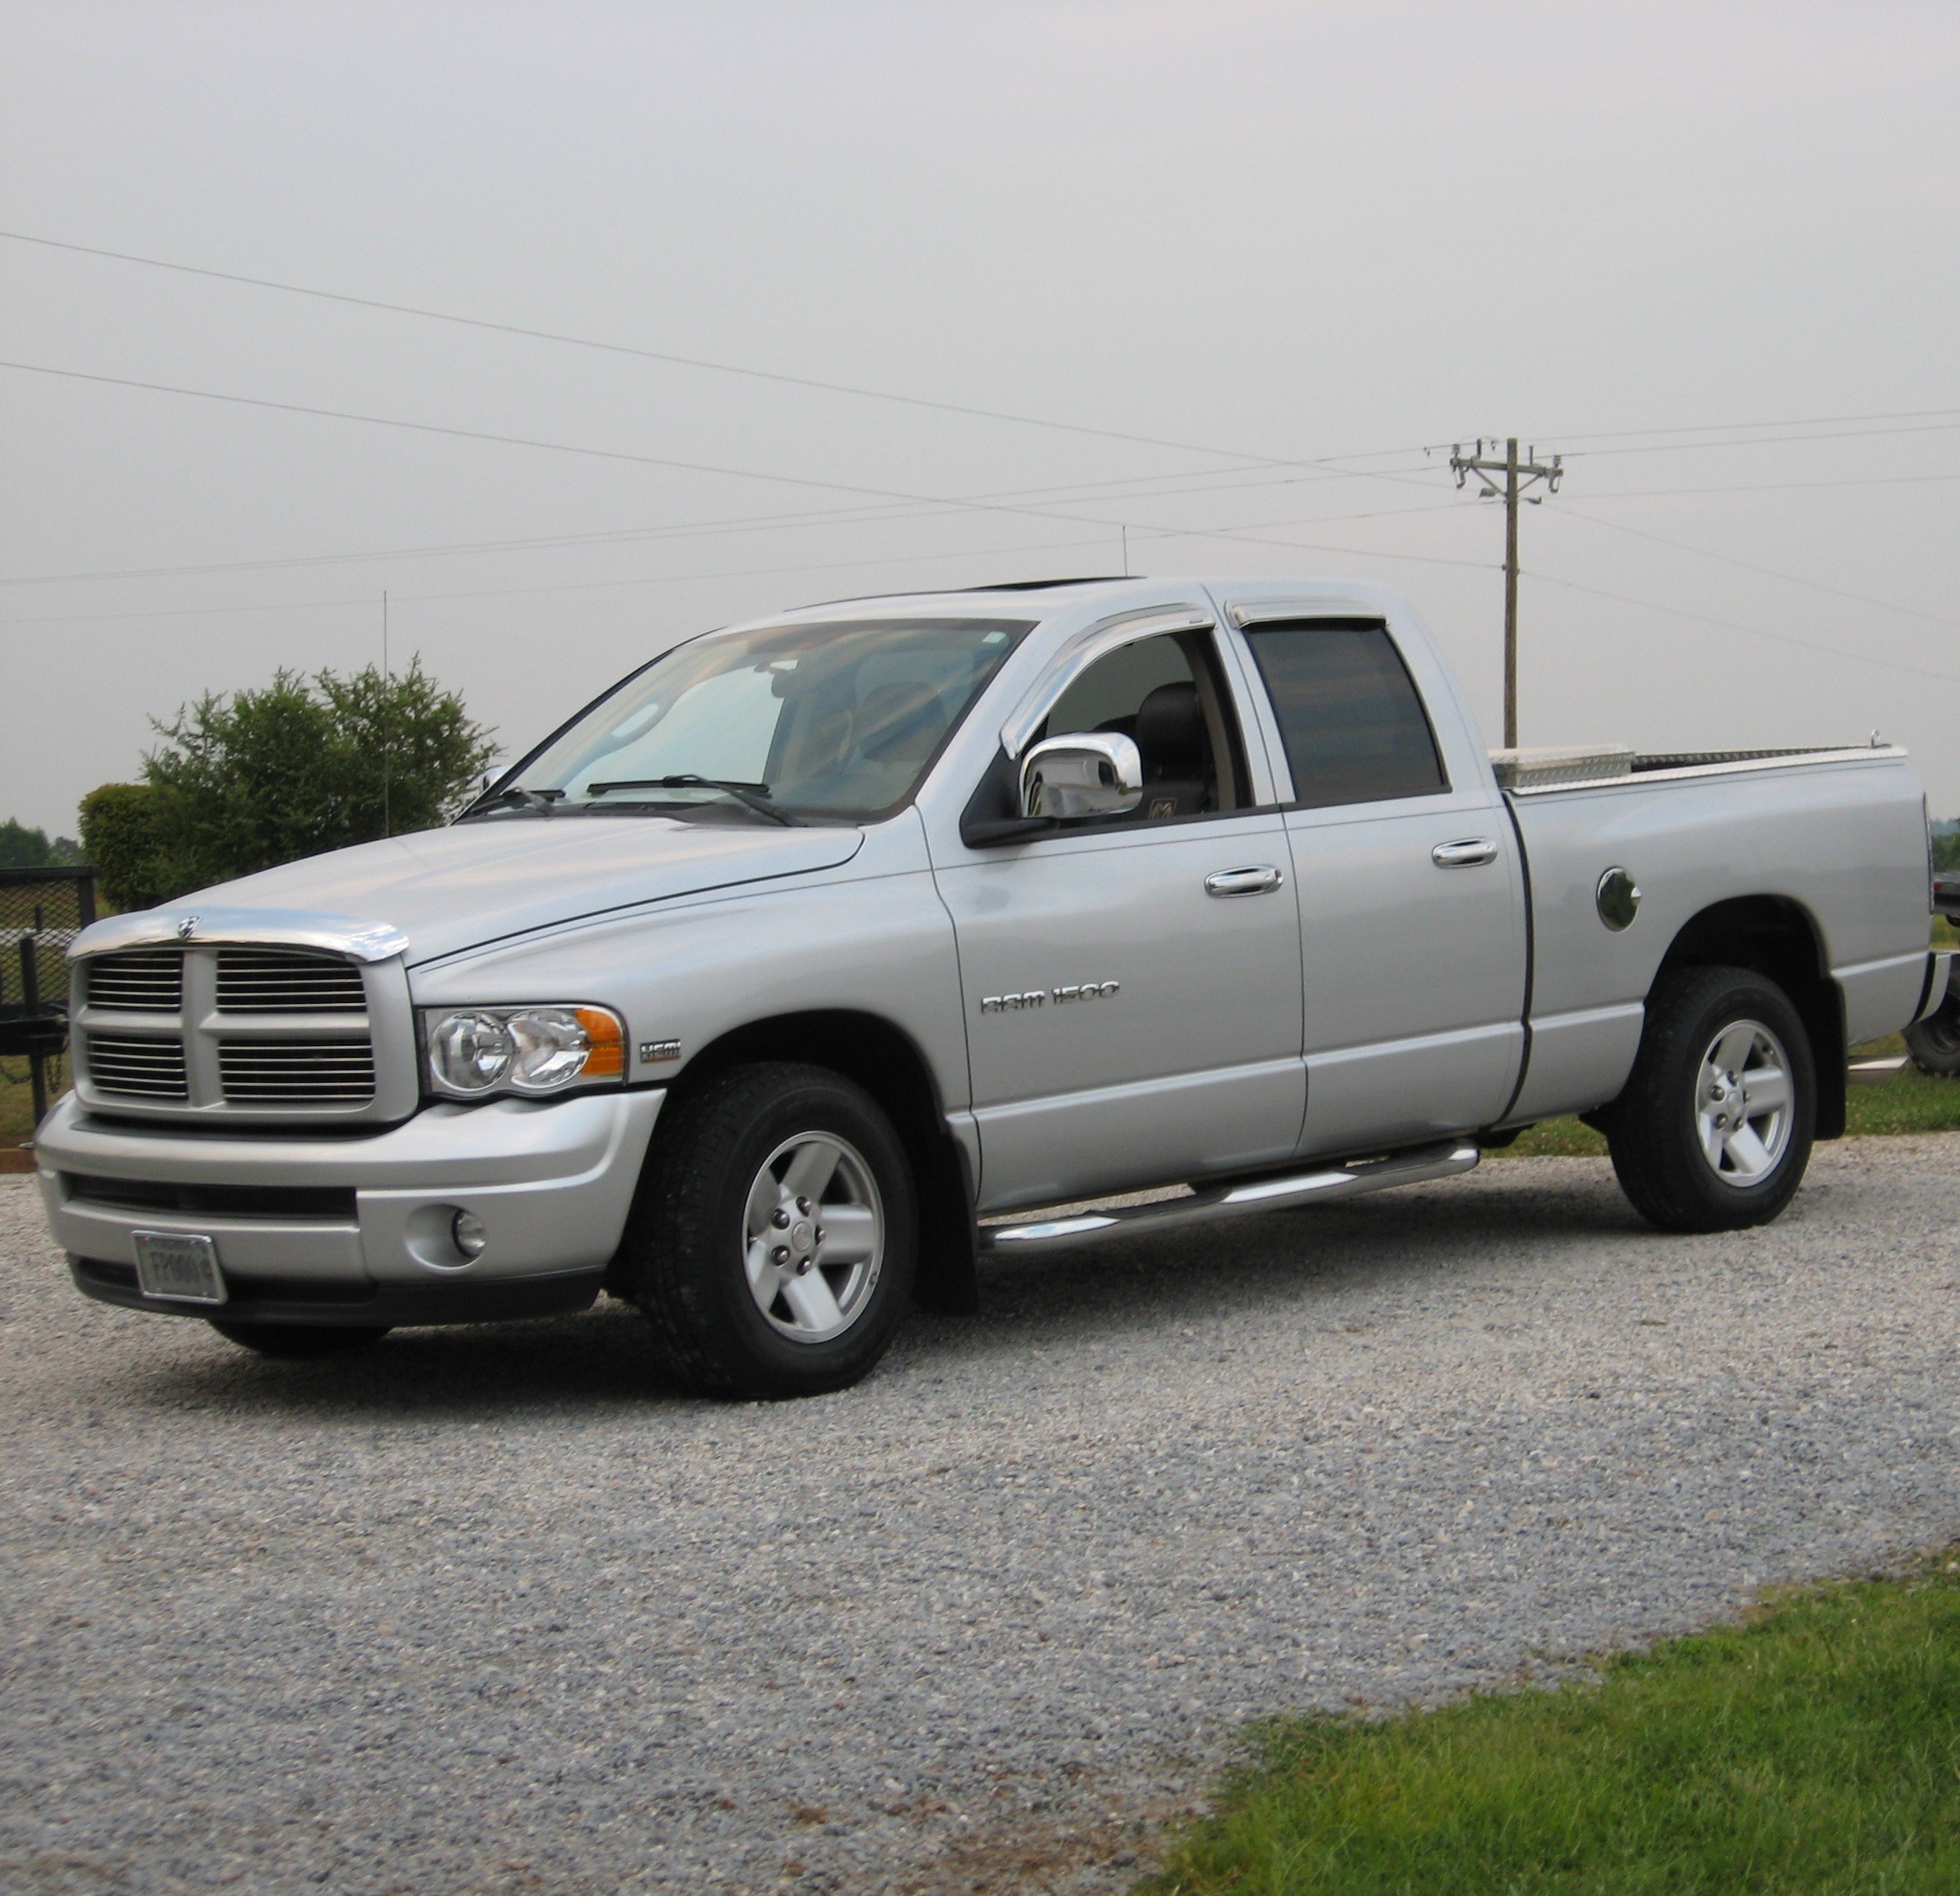 Dodge Ram 1500: Badboy3142 2003 Dodge Ram 1500 Regular Cab Specs, Photos